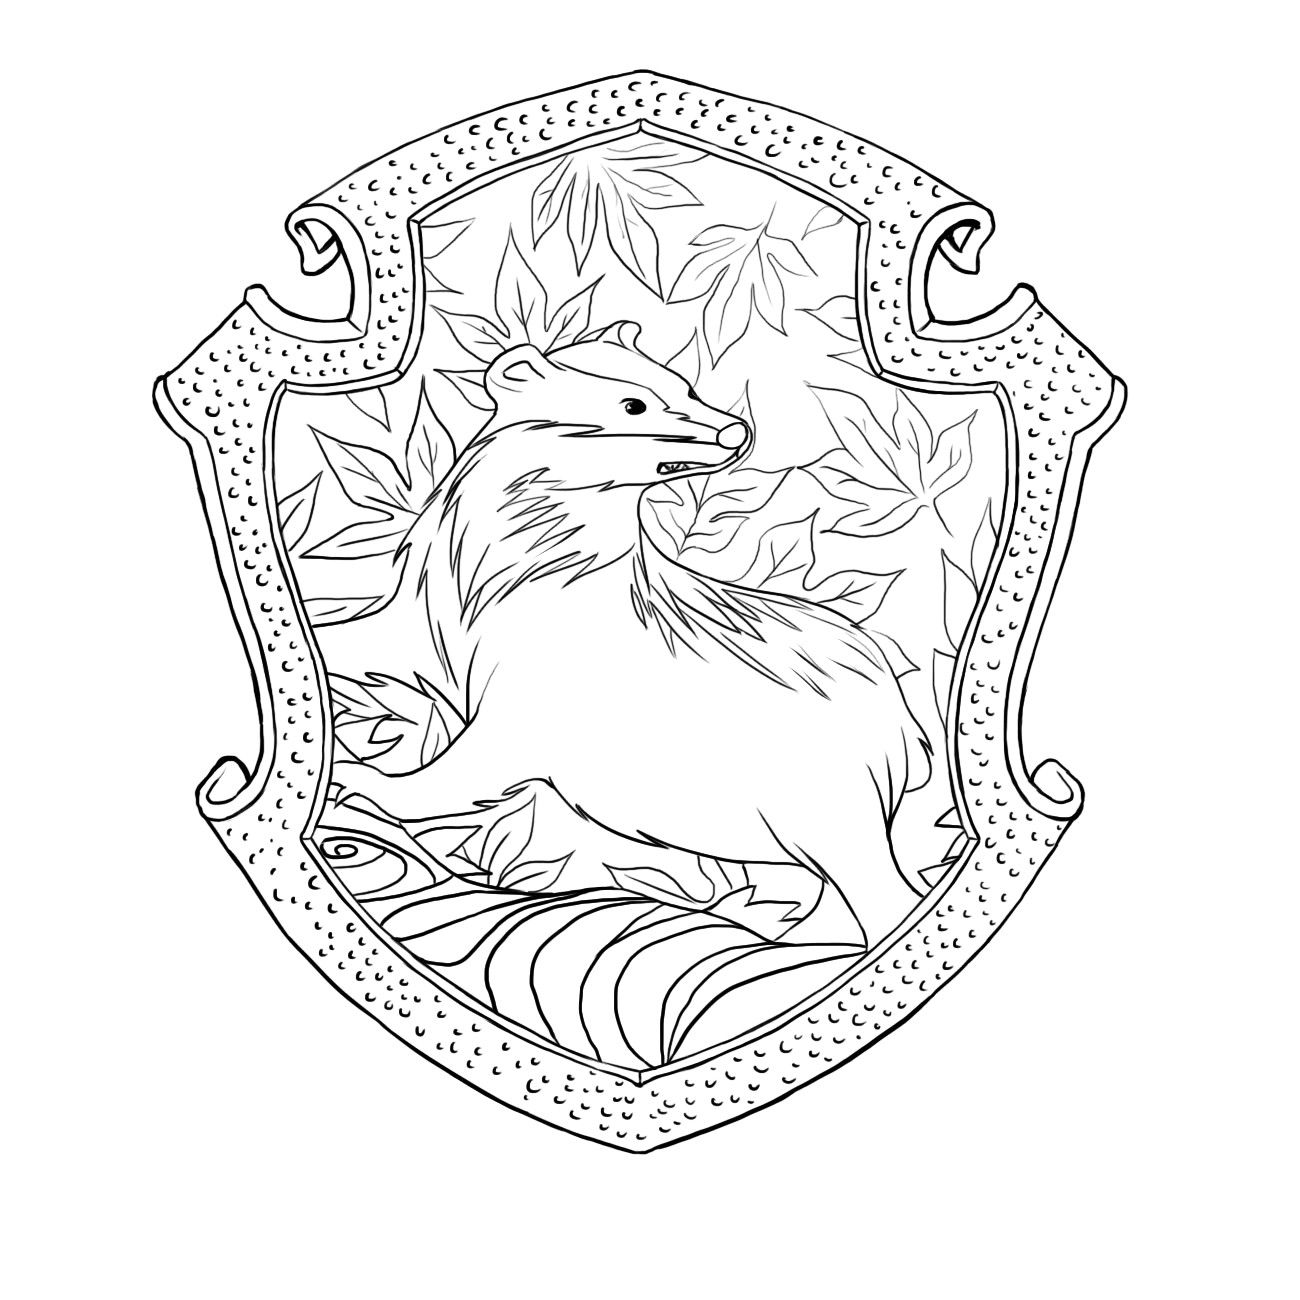 Ravenclaw Crest Coloring Pages Thekindproject Fancy Hufflepuff Page Harry Potter Coloring Pages Harry Potter Colors Harry Potter Drawings